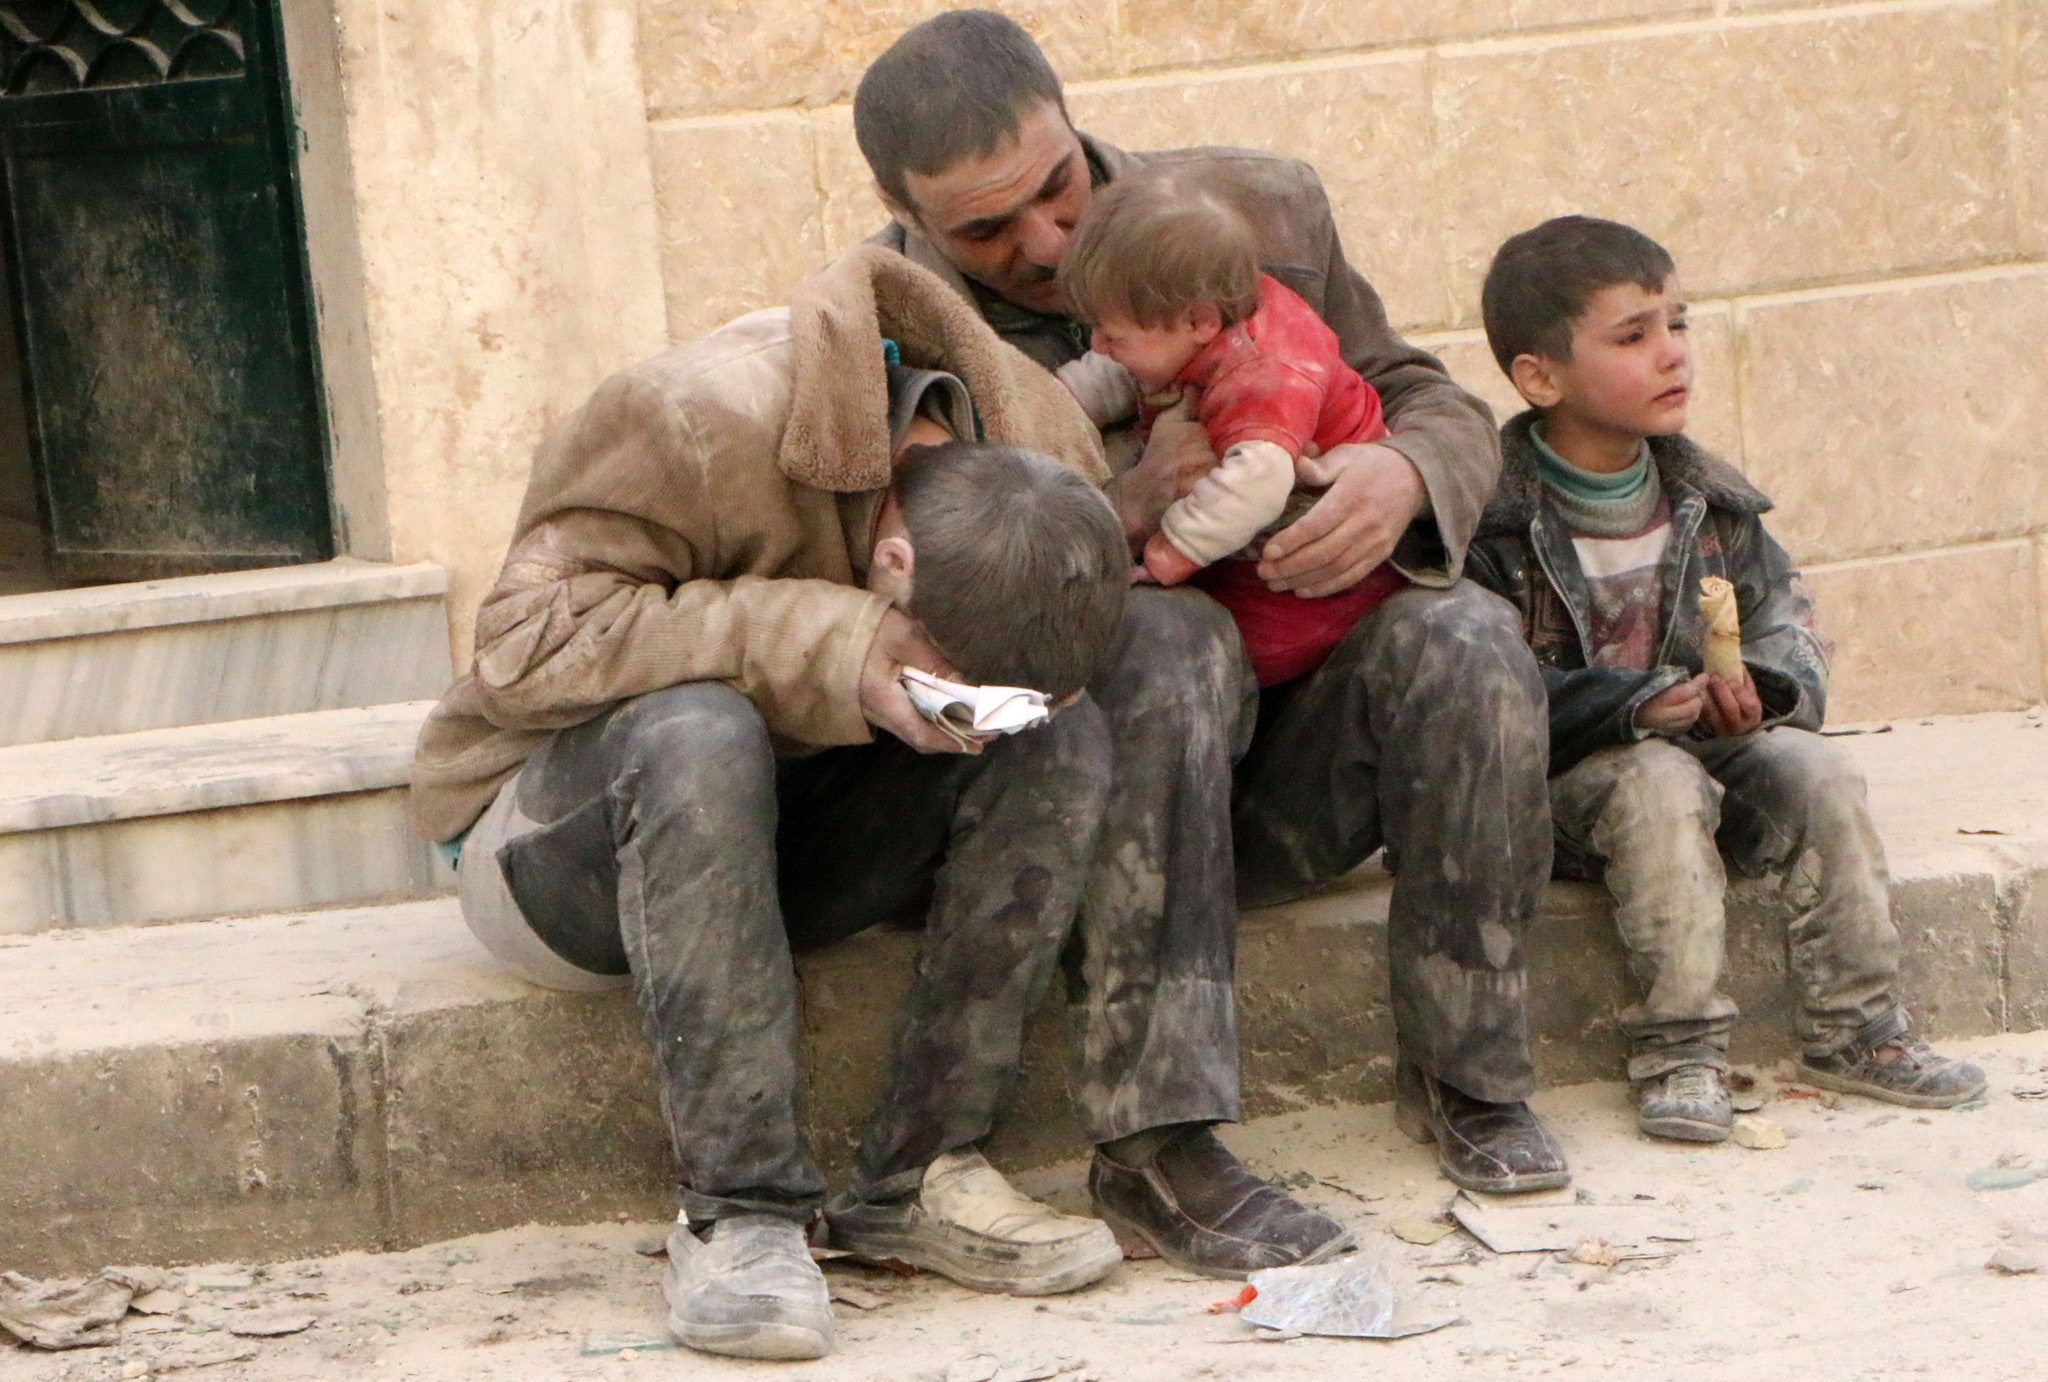 A man and three boys, covered with dust,...A man and three boys, covered with dust, sit in a state of shock following a reported air strike attack by government forces on the Hanano district of the northern Syrian city of Aleppo on February 14, 2014. Syria's warring sides began what was expected to be a decisive final day of talks in Geneva, amid warnings that they must at least agree an agenda to save the process.   AFP PHOTO/ALEPPO MEDIA CENTRE/FADI AL-HALABIFadi al-Halabi/AFP/Getty Images